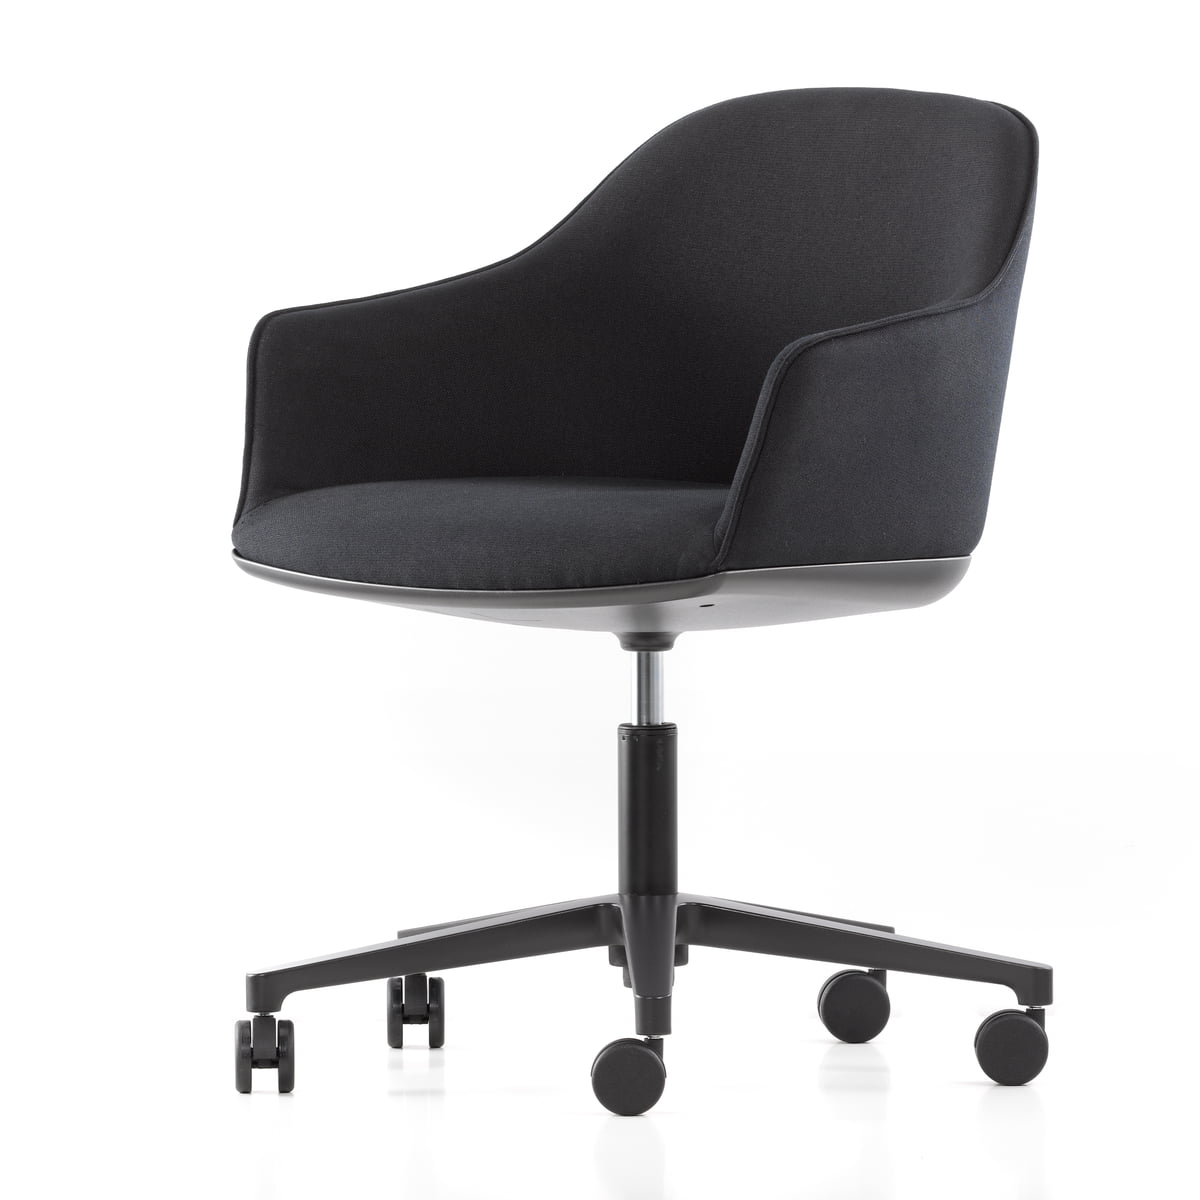 softshell chair vitra stuhl mit rollen kaufen. Black Bedroom Furniture Sets. Home Design Ideas